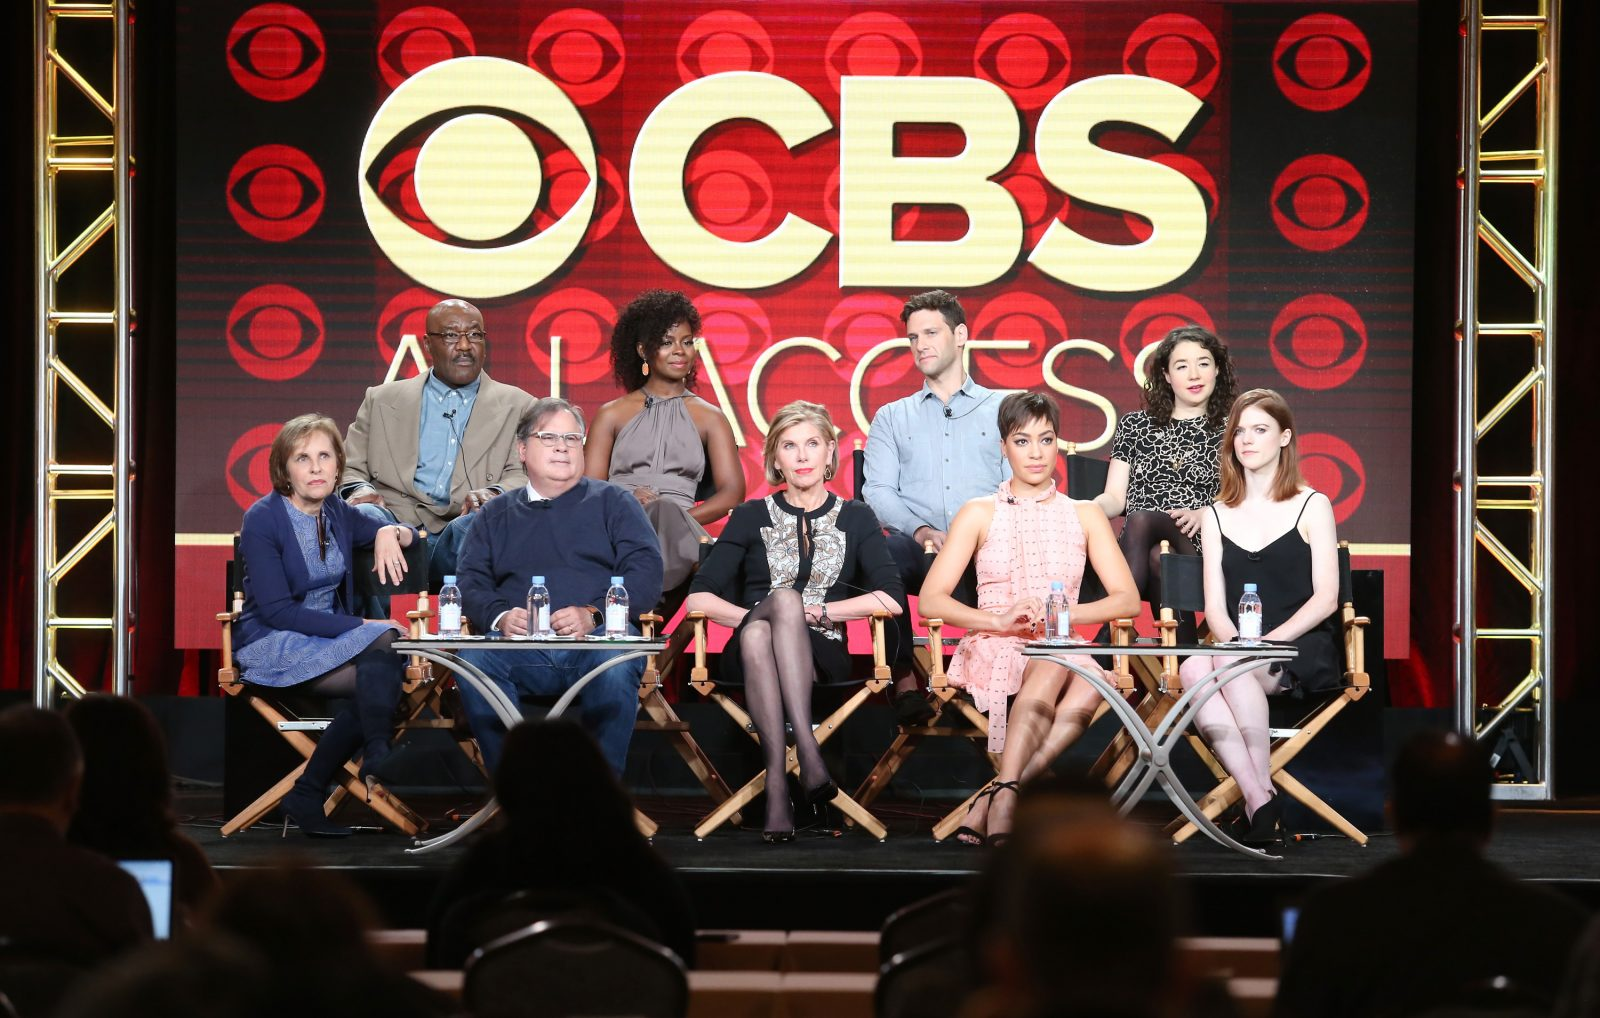 Actors Delroy Lindo, Erica Tazel, Justin Bartha and Sarah Steele, executive producer Michelle King, executive producer Robert King, actors Christine Baranski, Cush Jumbo and Rose Leslie of the television show 'The Good Fight' speak onstage during day five of the CBS portion of the 2017 Winter Television Critics Association Press Tour in Pasadena.  (Frederick M. Brown/Getty Images)